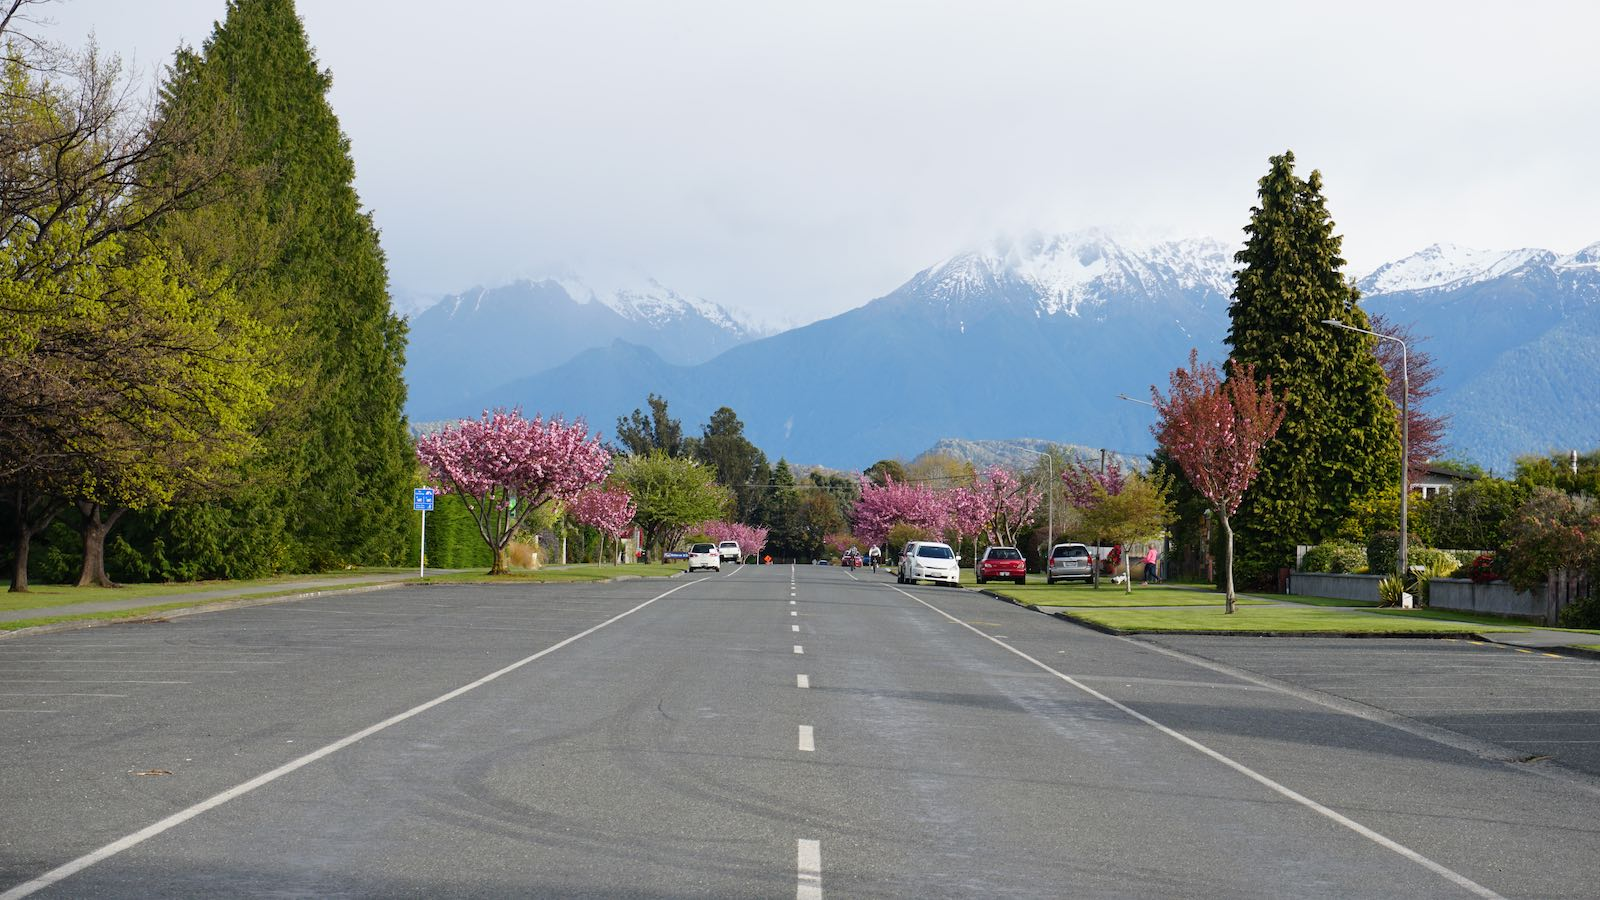 Does not have to be as pretty as this road in southern New Zealand.